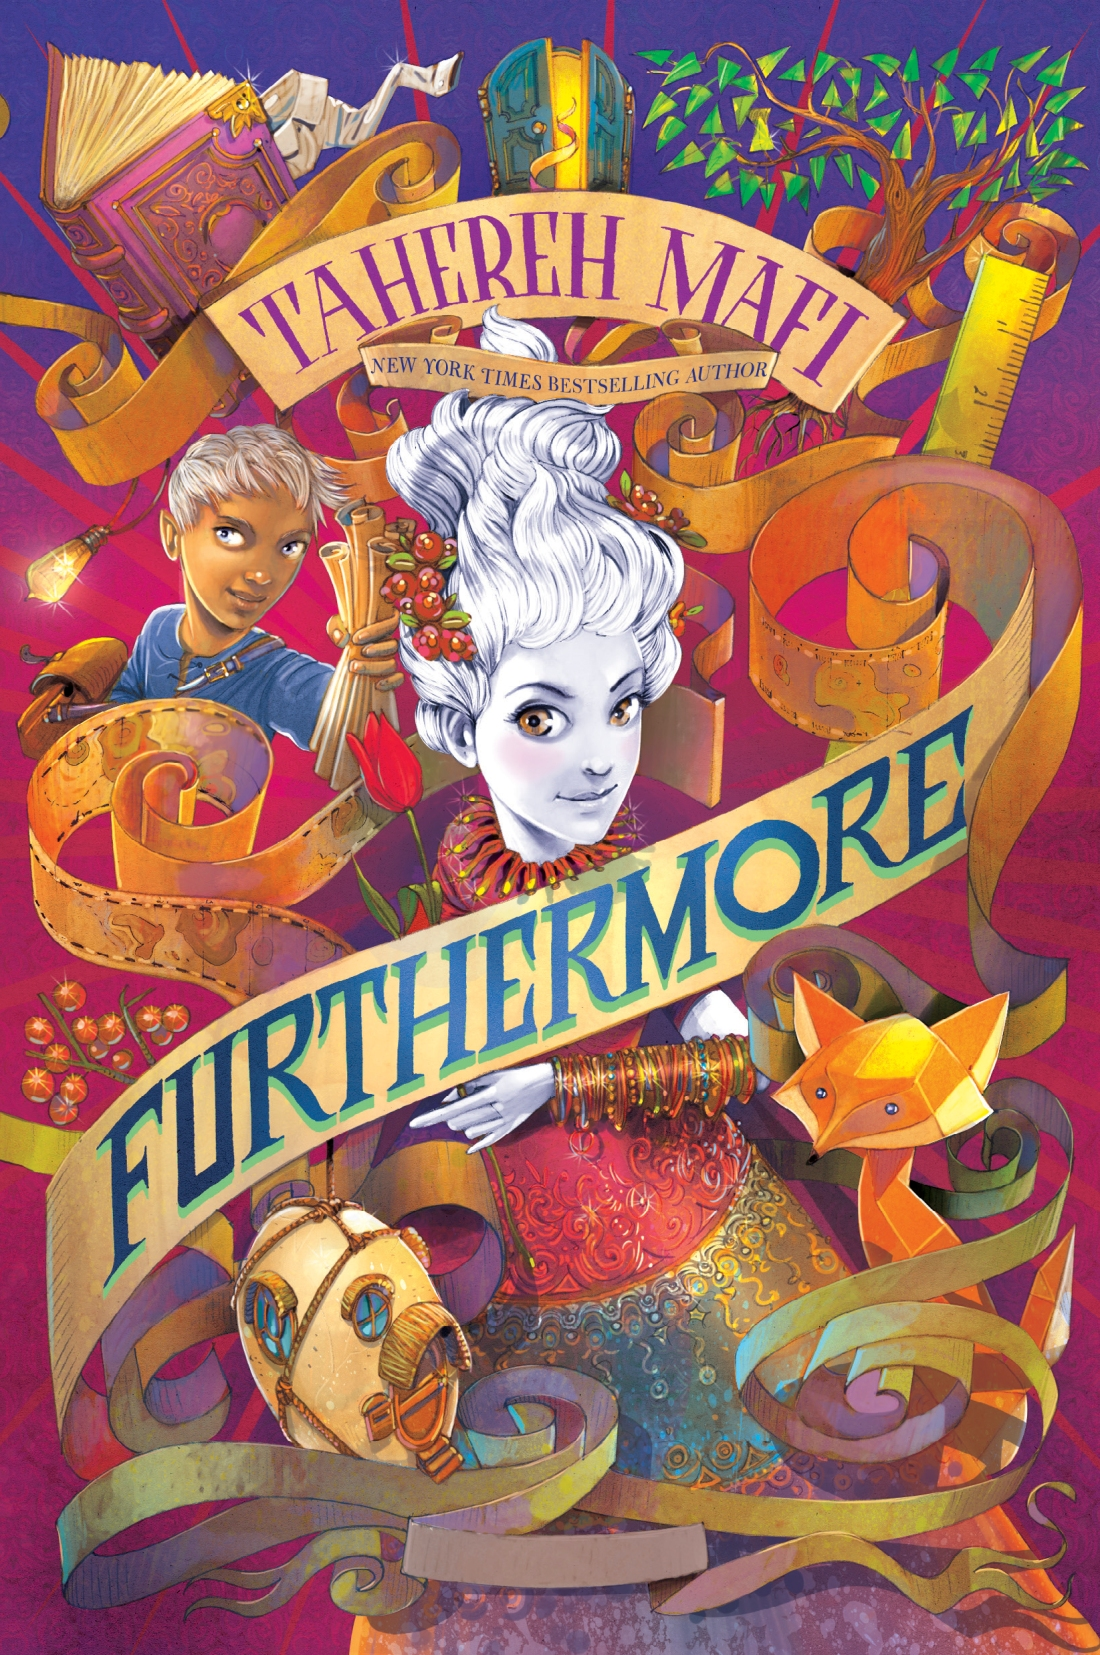 furthermore-cover-final-jan-7-2016